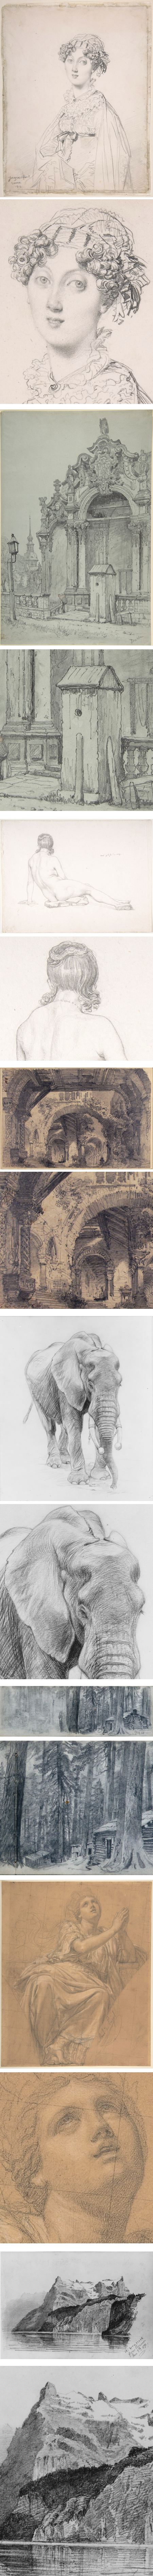 Graphite drawings from the Metropolitan Museum of Art: Jean Auguste Dominique Ingres, Samuel Prout, Samuel Amsler, Carlo Ferrario, Charles R. Knight, William Trost Richards,  Alexandre Denis Abel de Pujol, John Singer Sargent